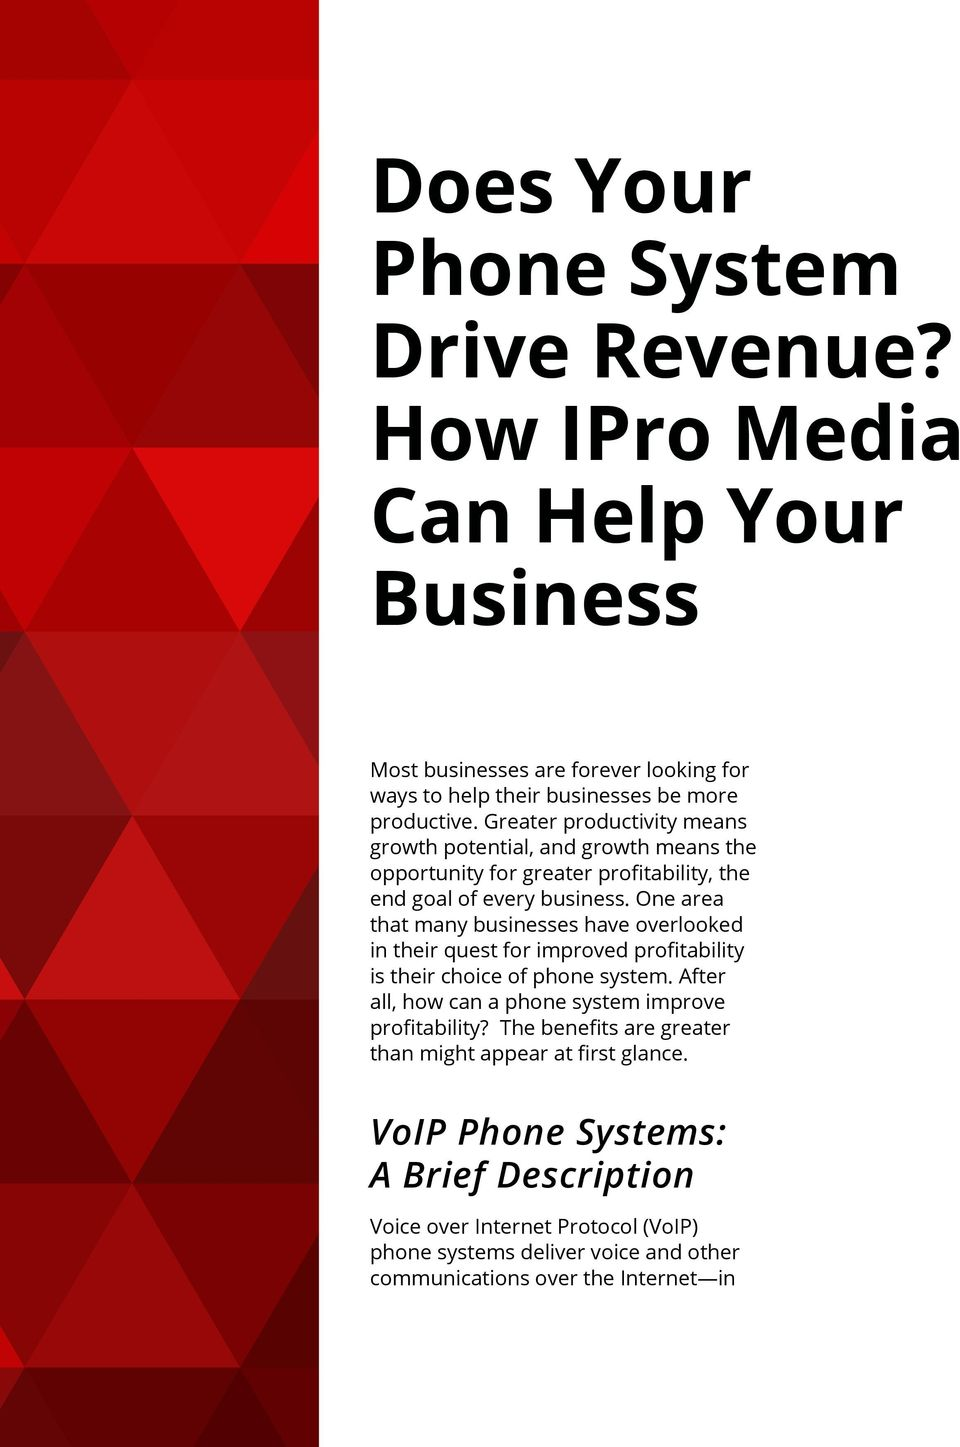 One area that many businesses have overlooked in their quest for improved profitability is their choice of phone system.